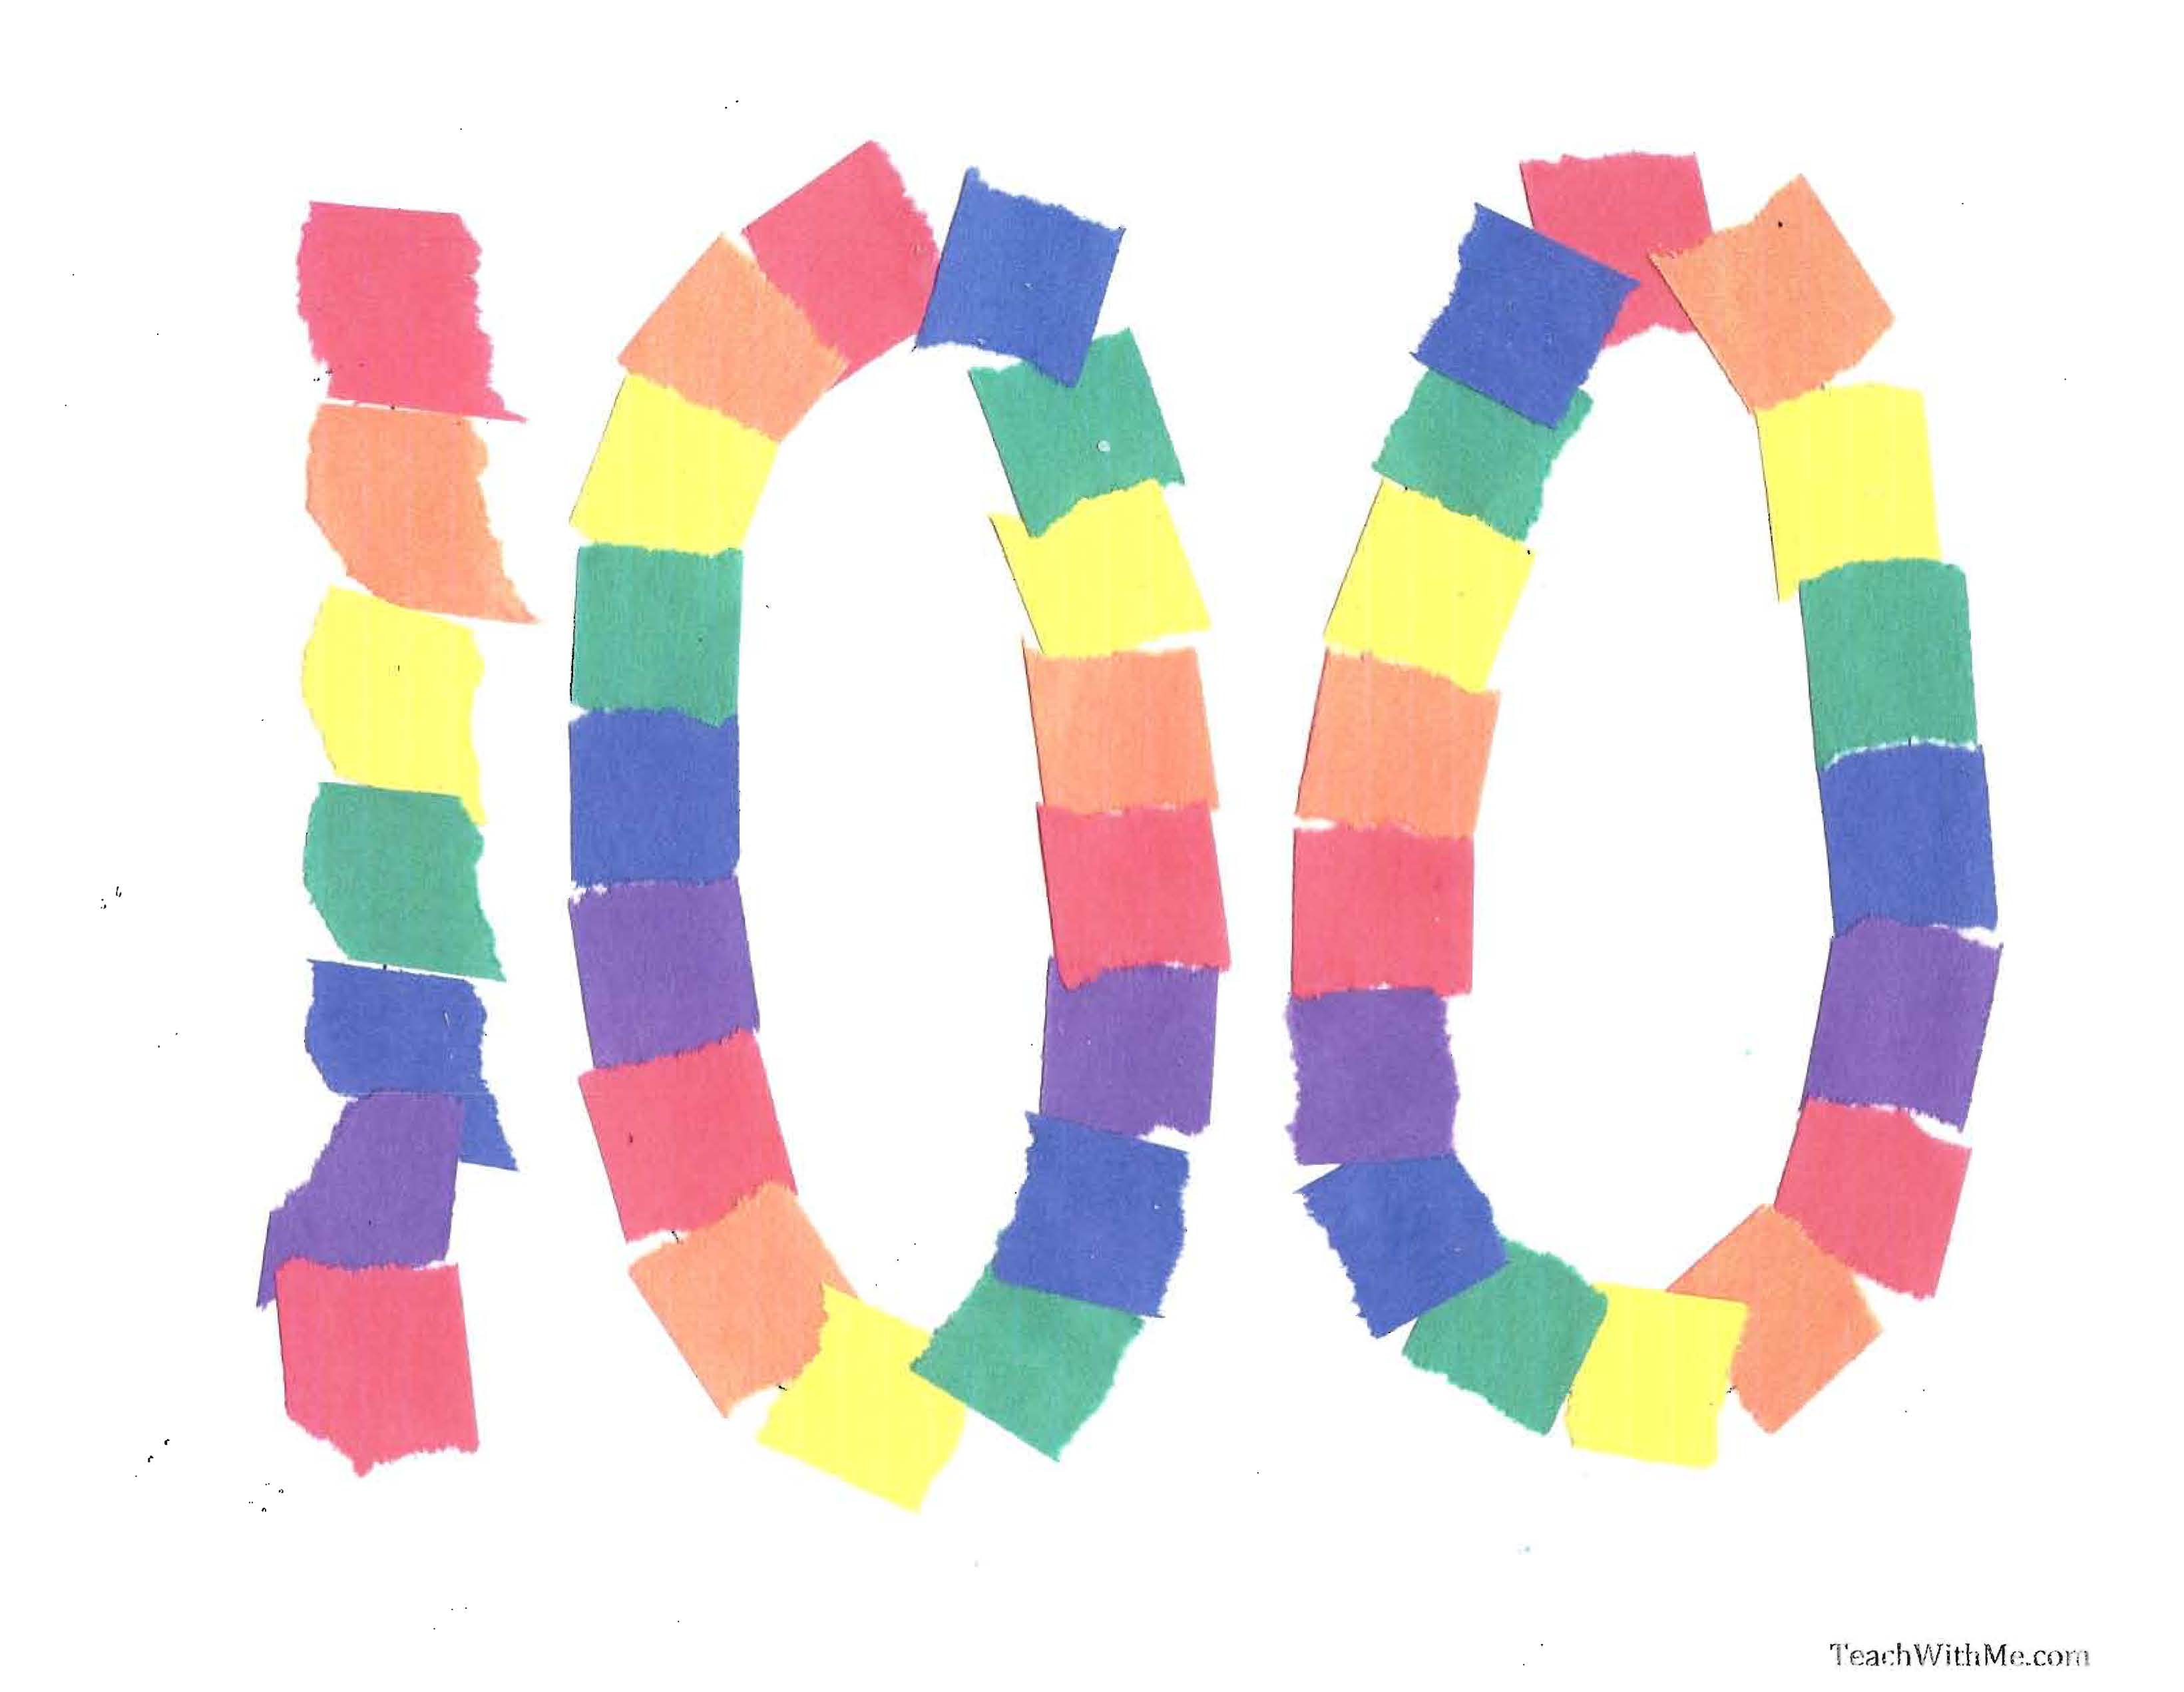 100 day certificates, 100 day crafts, 100 day activities, lessons for 100 day, ideas for 100 day, 100 day bulletin boards, 100 day writing prompts, writing prompts for 100 day, 100 hours journal, 100 ways to say i love you, 100 ways to praise a student, 100 ways to praise a child, how do you say 100 in a different language, saying 100 in another language, list of 20 ways to say 100, 100 day bookmark, 100 smilie faces bookmark, rip and tear craft, rip and tear 100, what comes after a trillion, super hero certificates, owl certificates, 100 day graphing activities, skip counting certificates, large number anchor chart